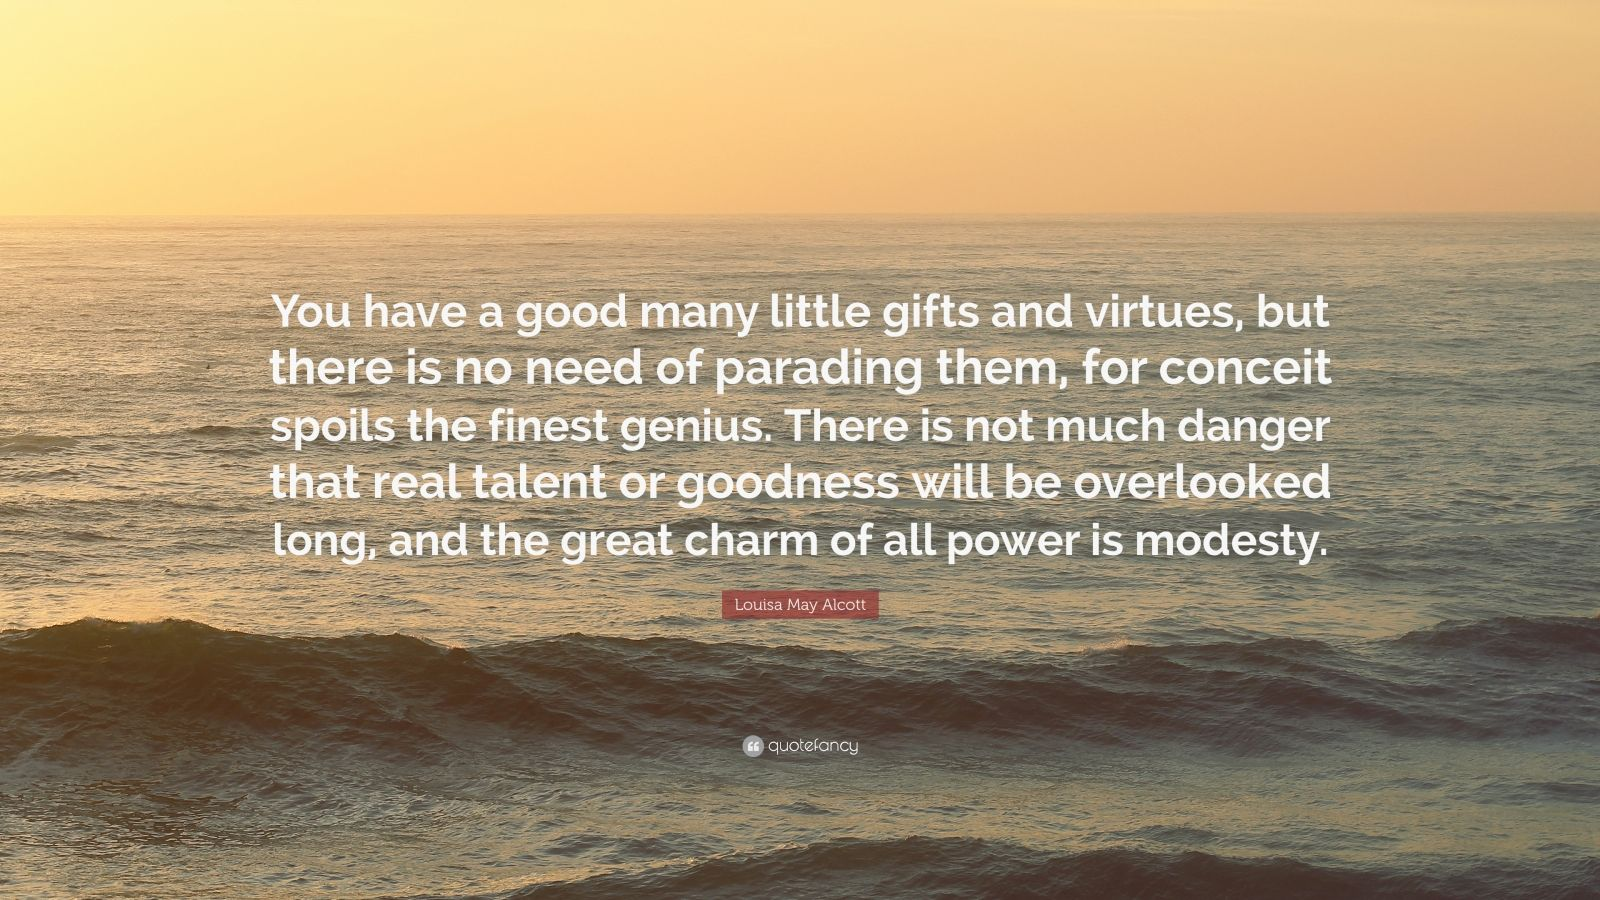 """Louisa May Alcott Quote: """"You have a good many little gifts and virtues, but there is no need of parading them, for conceit spoils the finest genius. There is not much danger that real talent or goodness will be overlooked long, and the great charm of all power is modesty."""""""